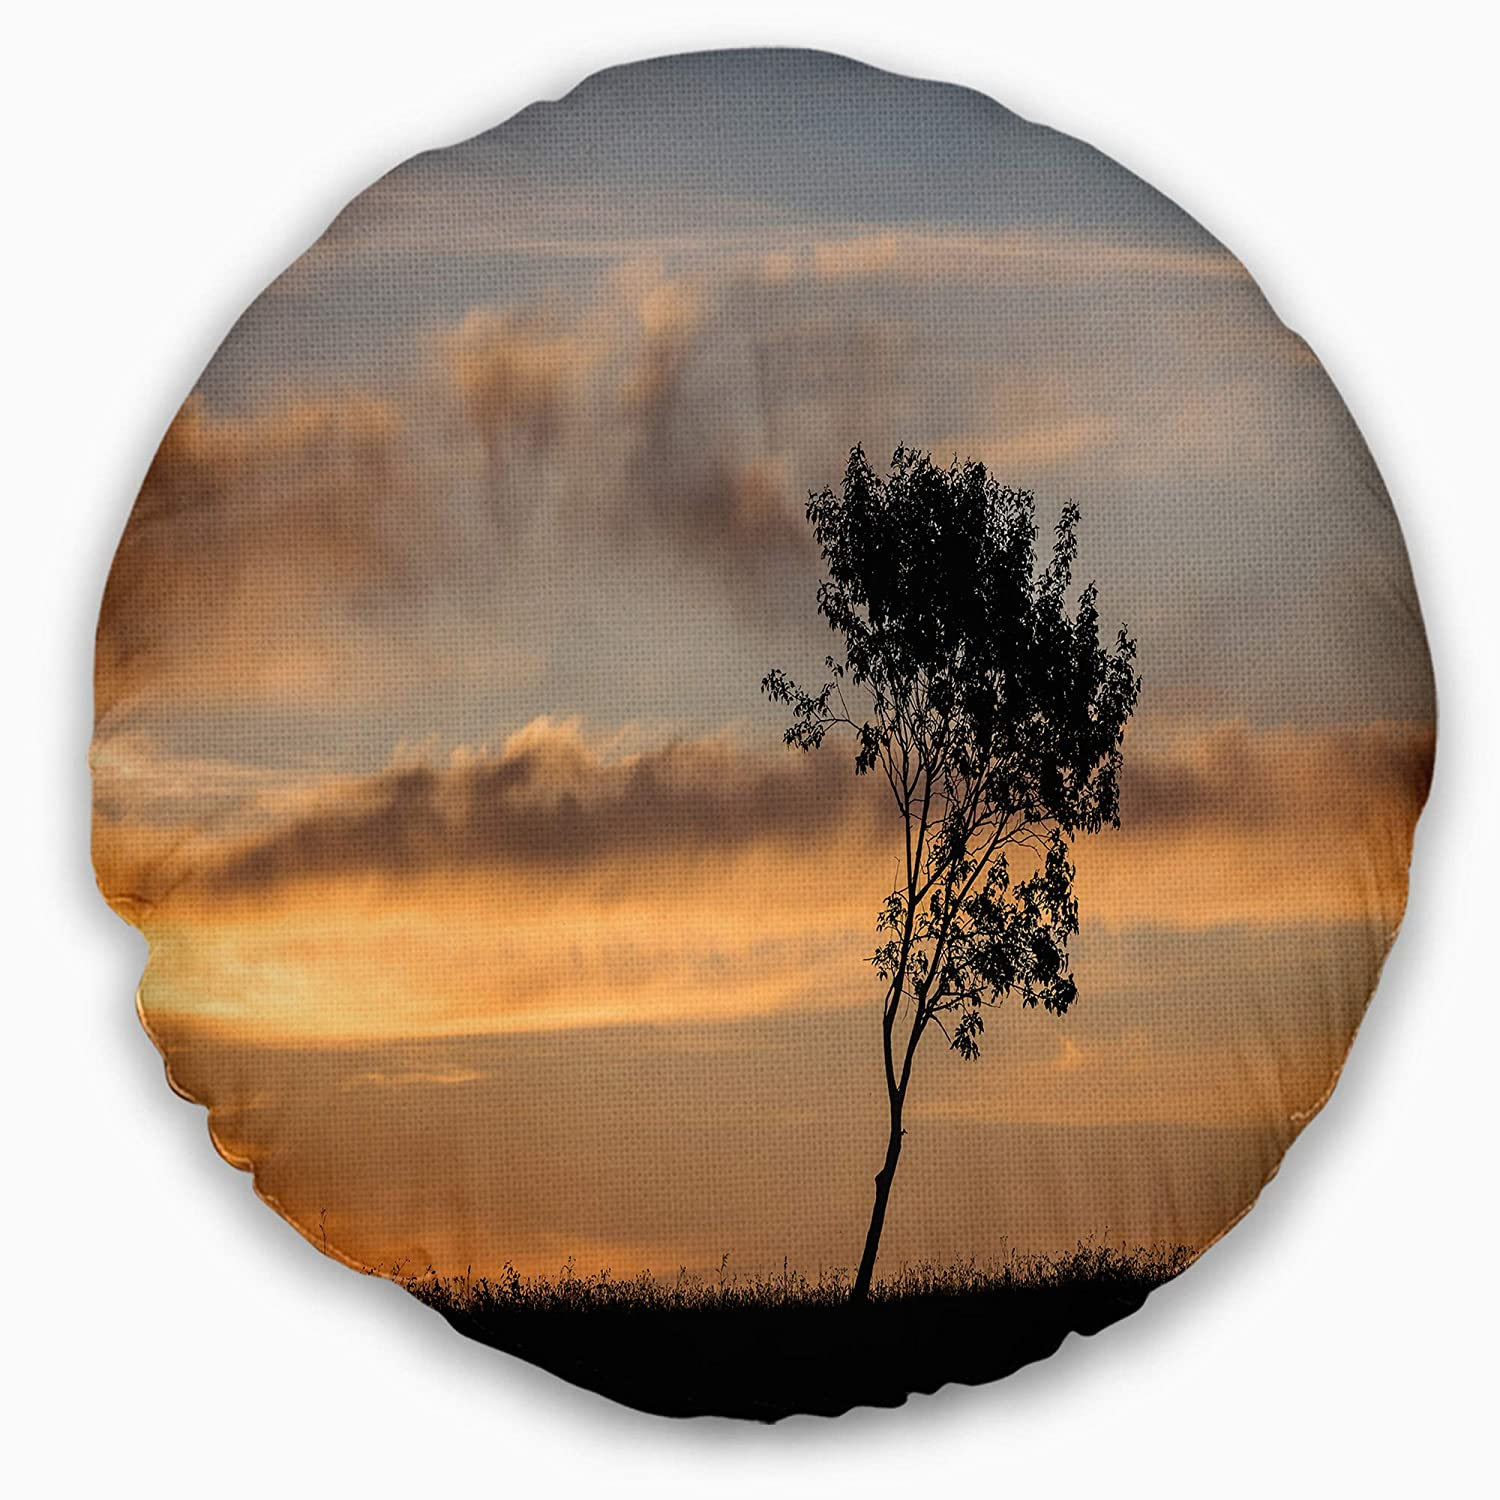 Sofa Throw Pillow 20 Designart CU9995-20-20-C Lonely Tree Silhouette Rightwards Landscape Printed Round Cushion Cover for Living Room